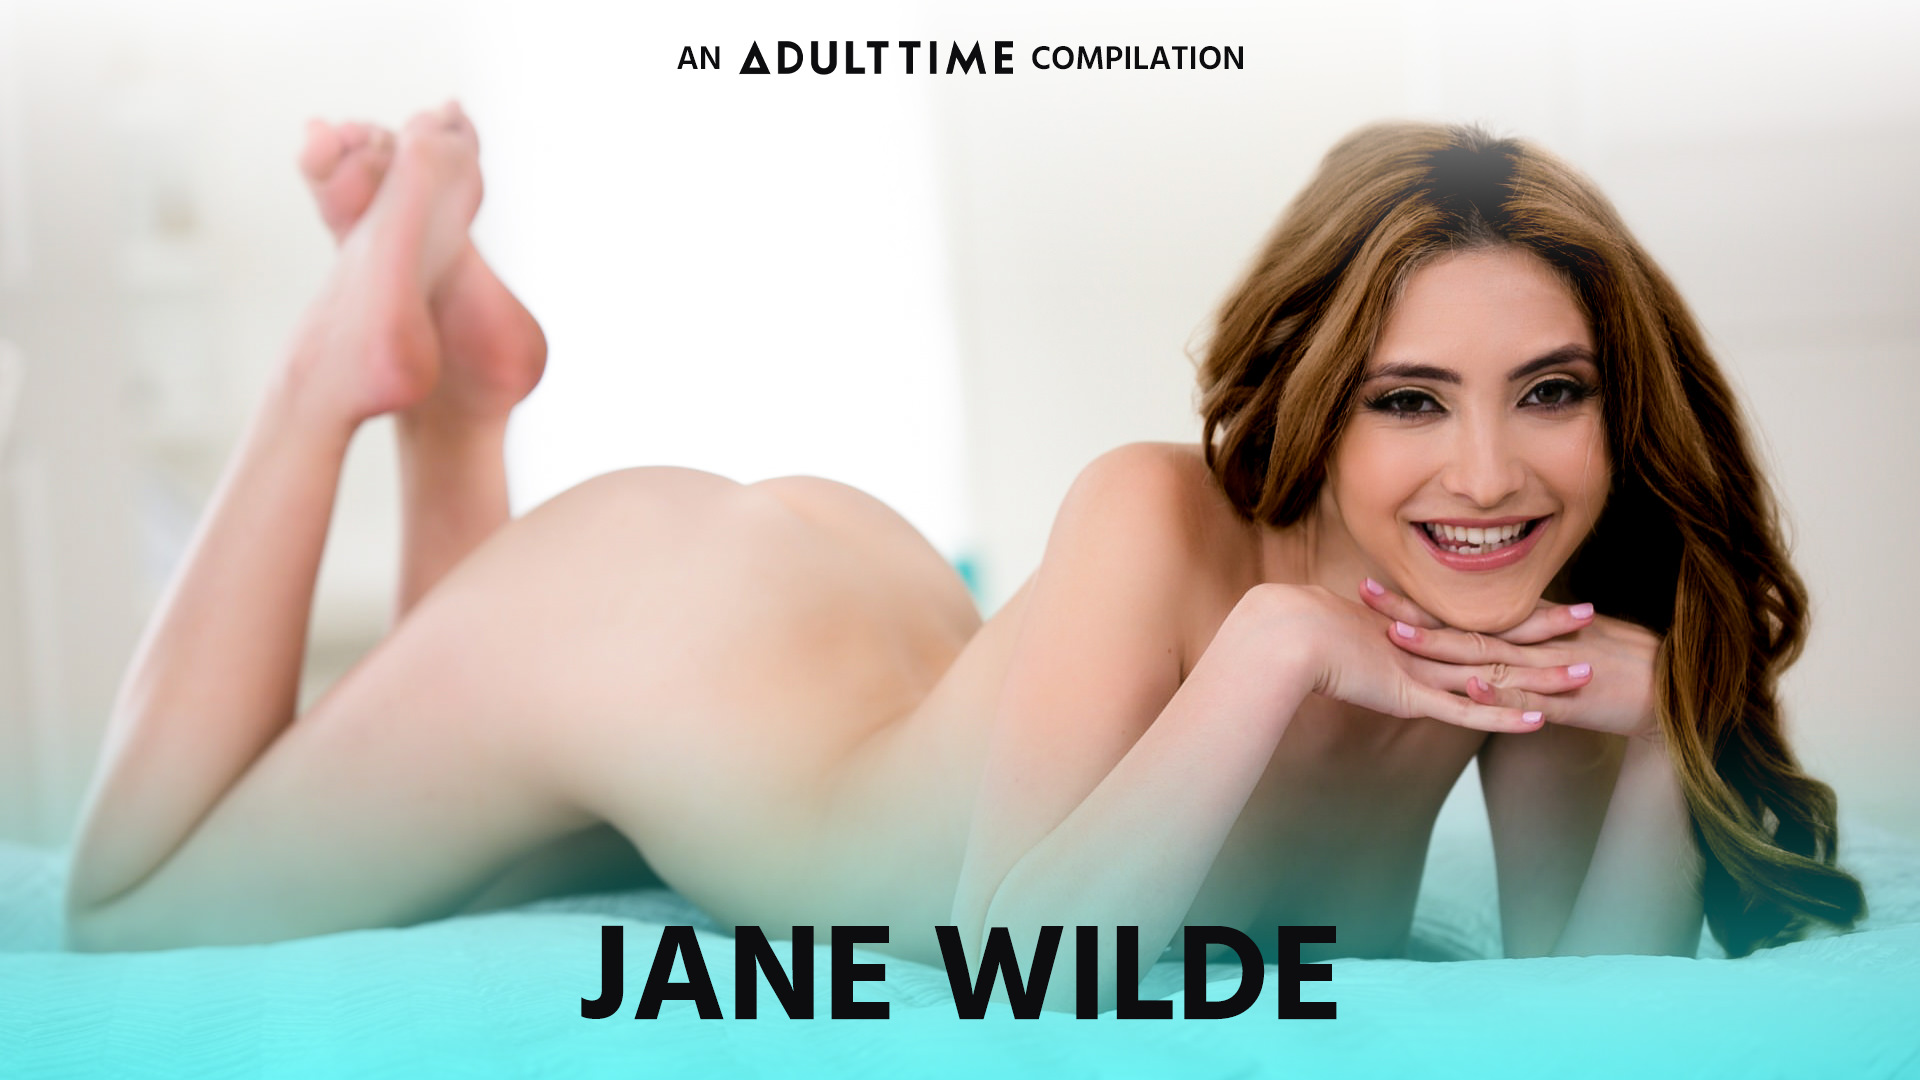 Jane Wilde - An Adult Time Compilation - Jane Wilde 1